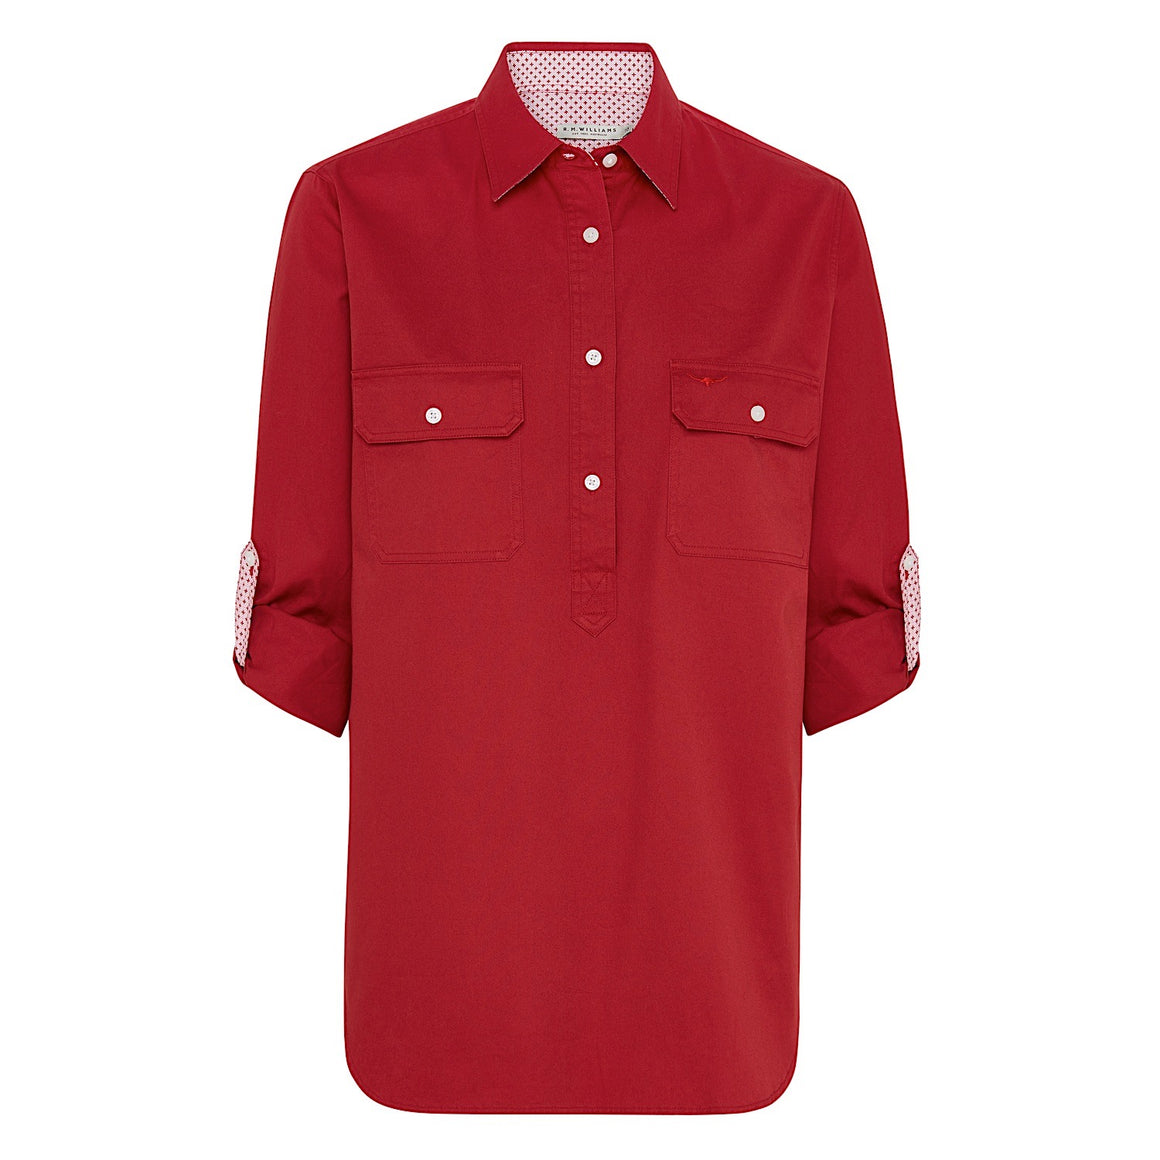 R.M.Williams Broken Hill Shirt Red